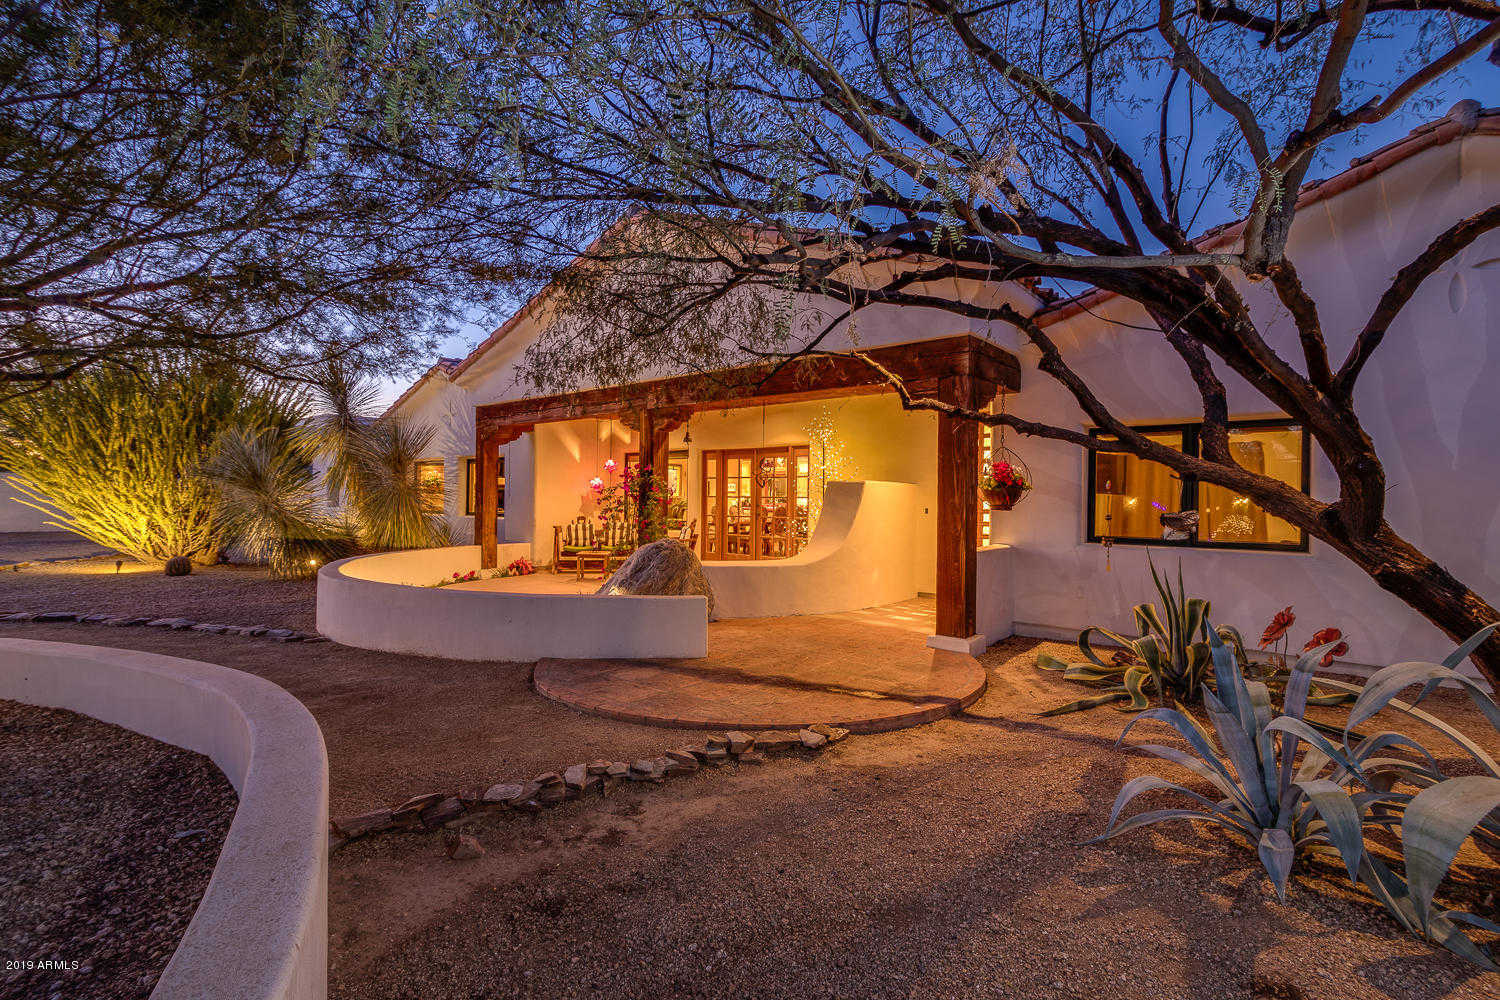 $1,499,000 - 5Br/4Ba - Home for Sale in Doubletree Estates, Paradise Valley